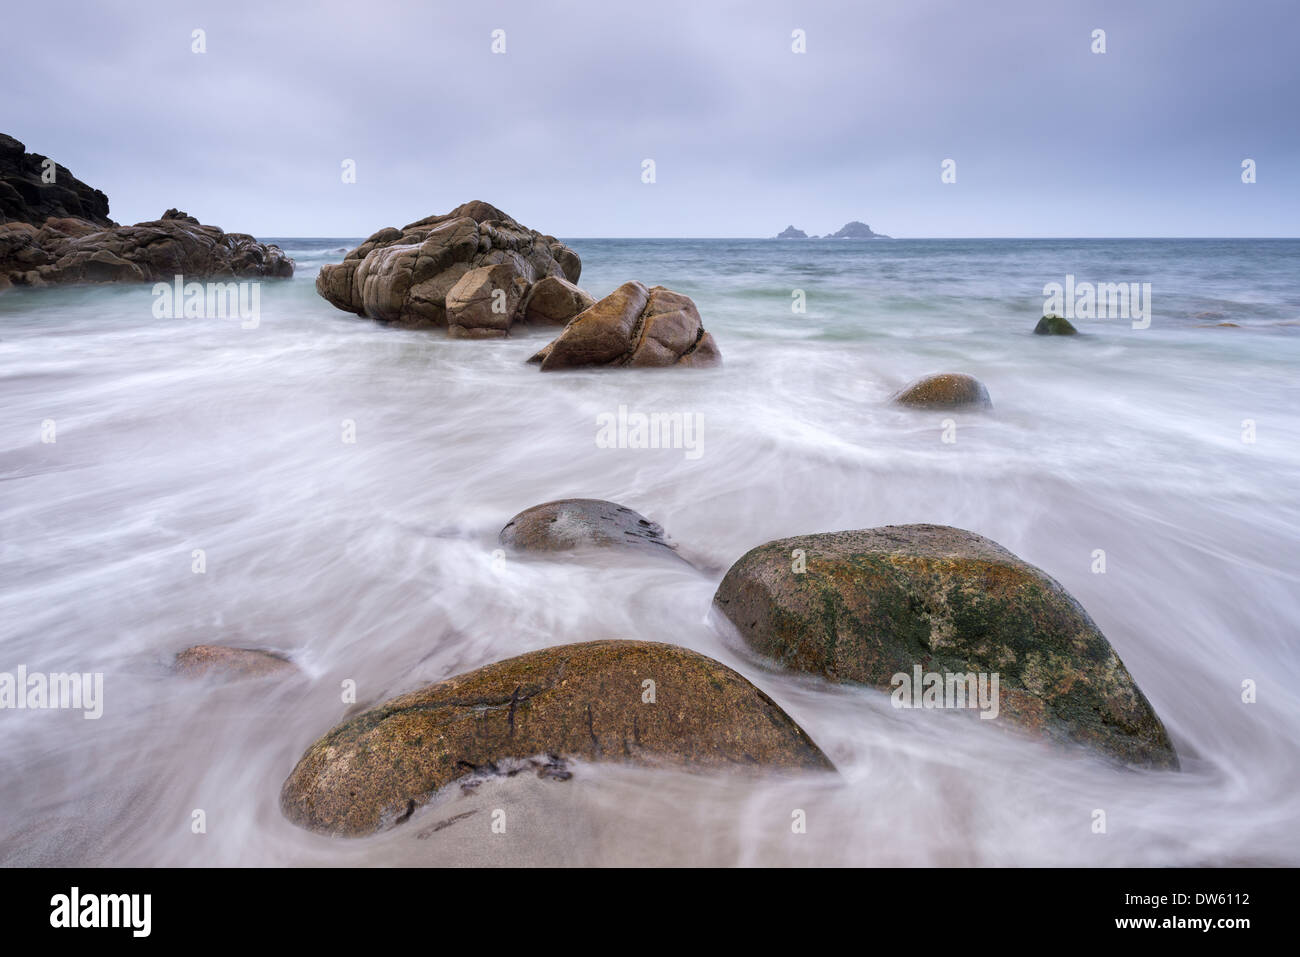 Waves wash over the beach at Porth Nanven near Land's End, Cornwall, England. Autumn (October) 2013. - Stock Image